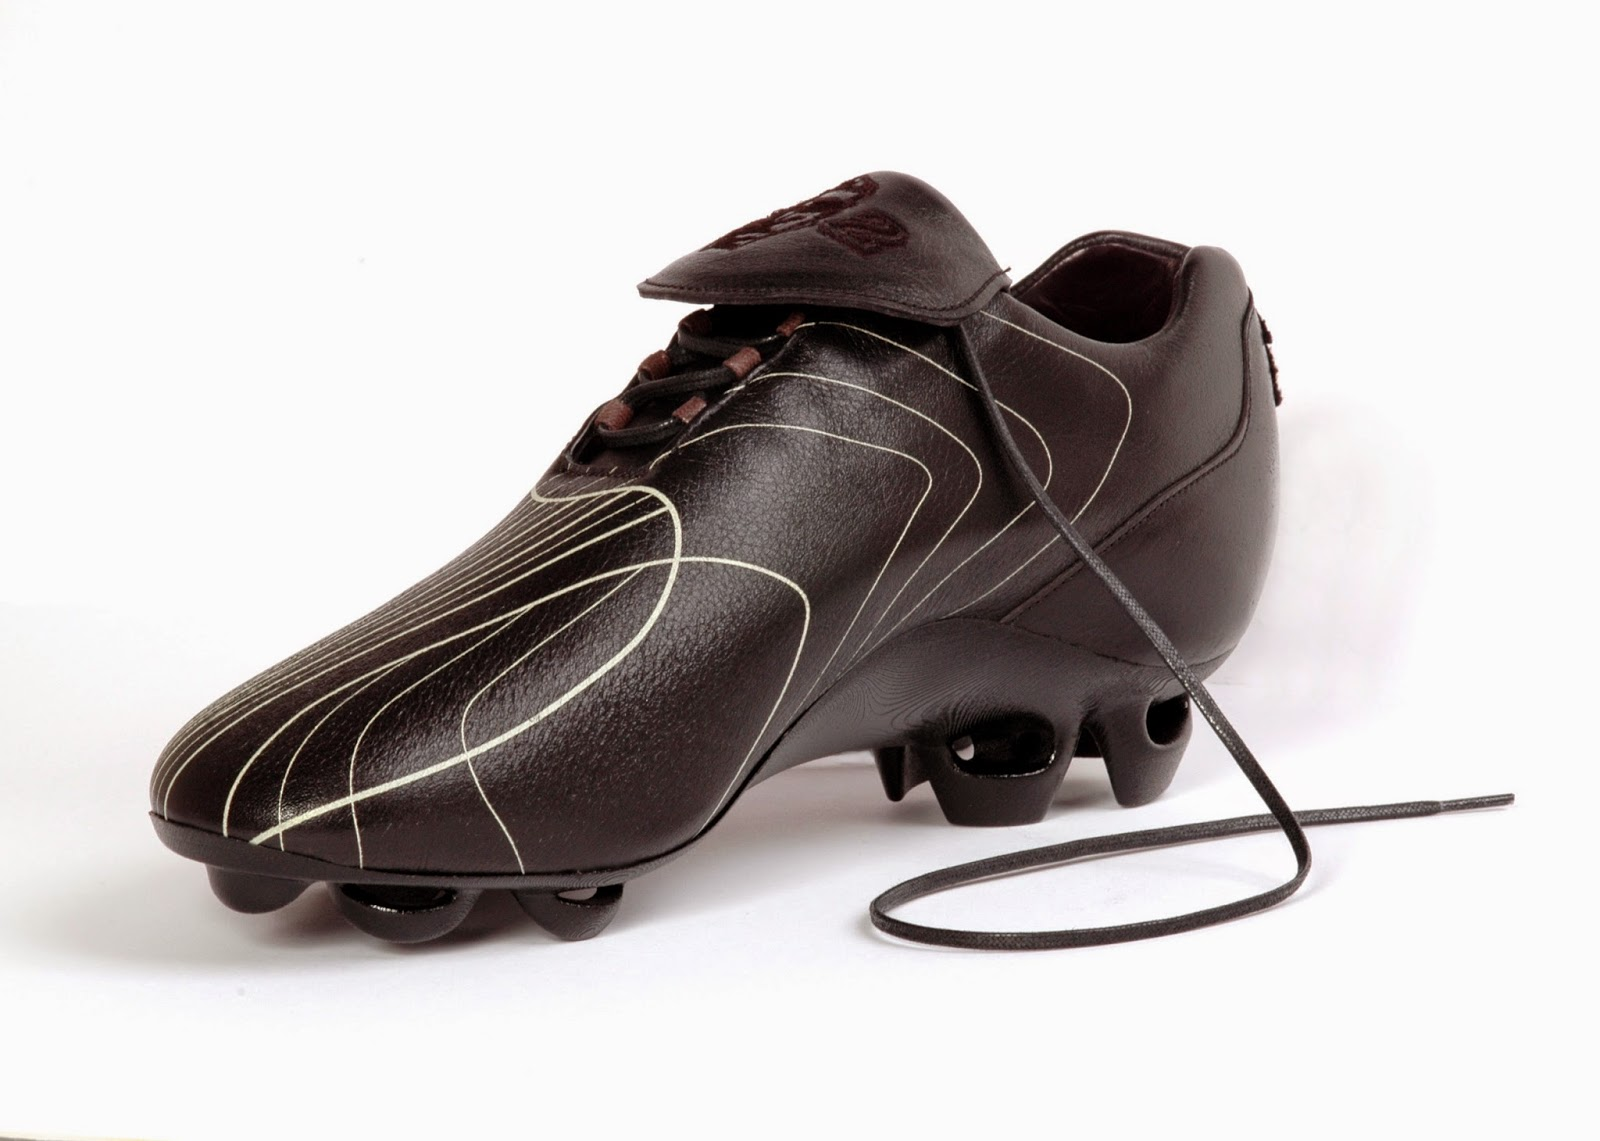 ea1c5a3fca7 An innovative shoe manufacturing process using a 3-D footprint called  selective laser sintering (SLS) has been used to custom design soccer boots.